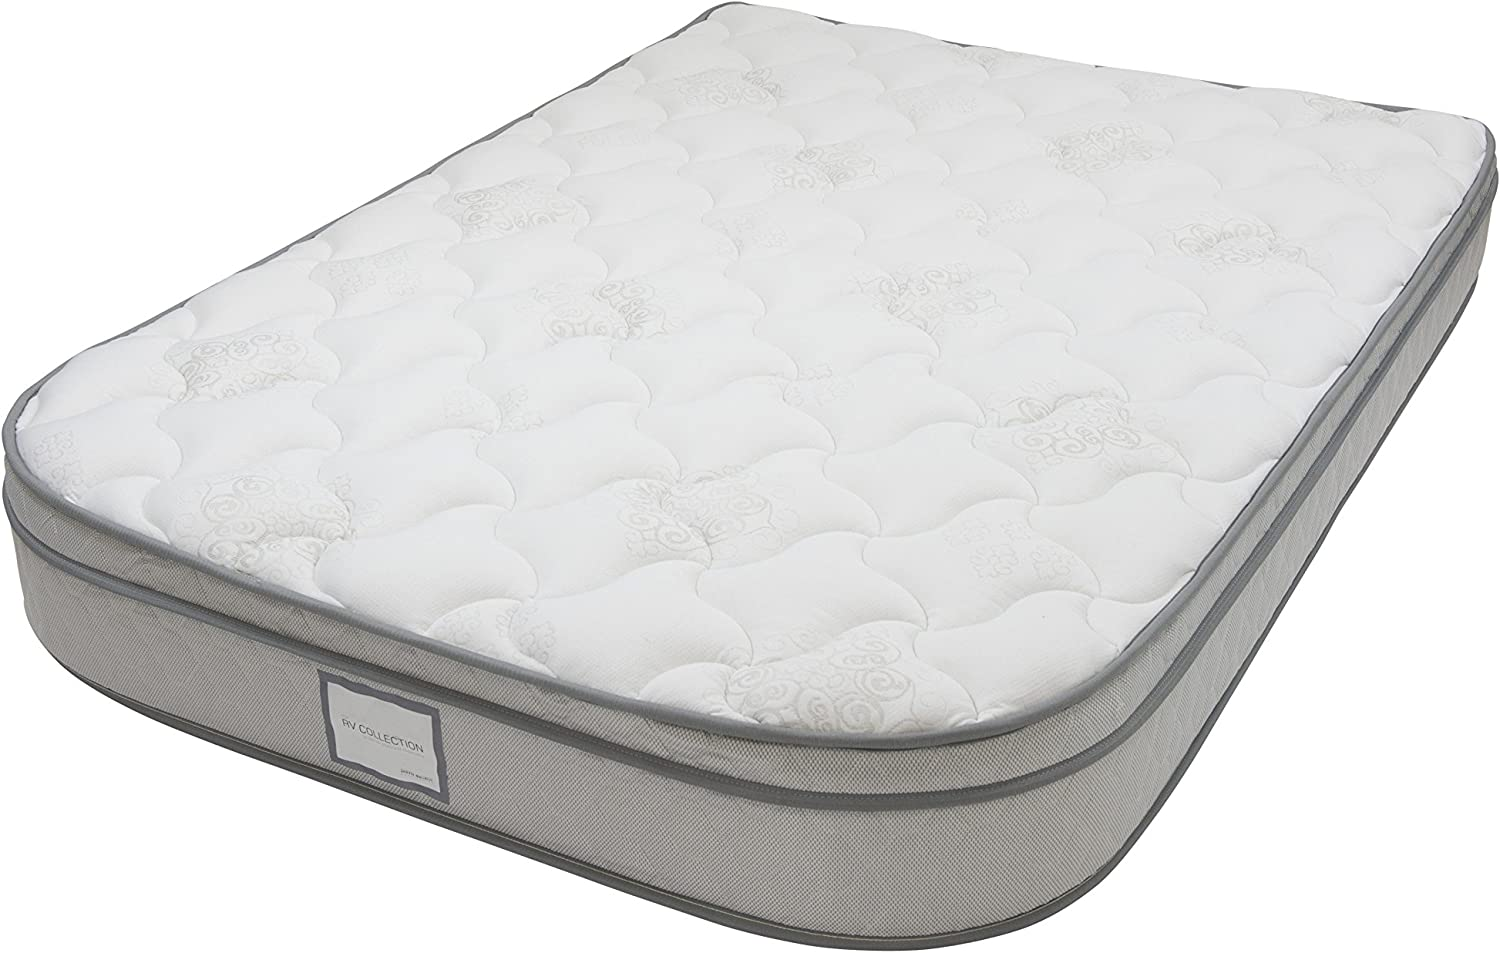 Denver 326391 Short Queen Size RV Supreme Euro Top Mattress with Radius Corners White